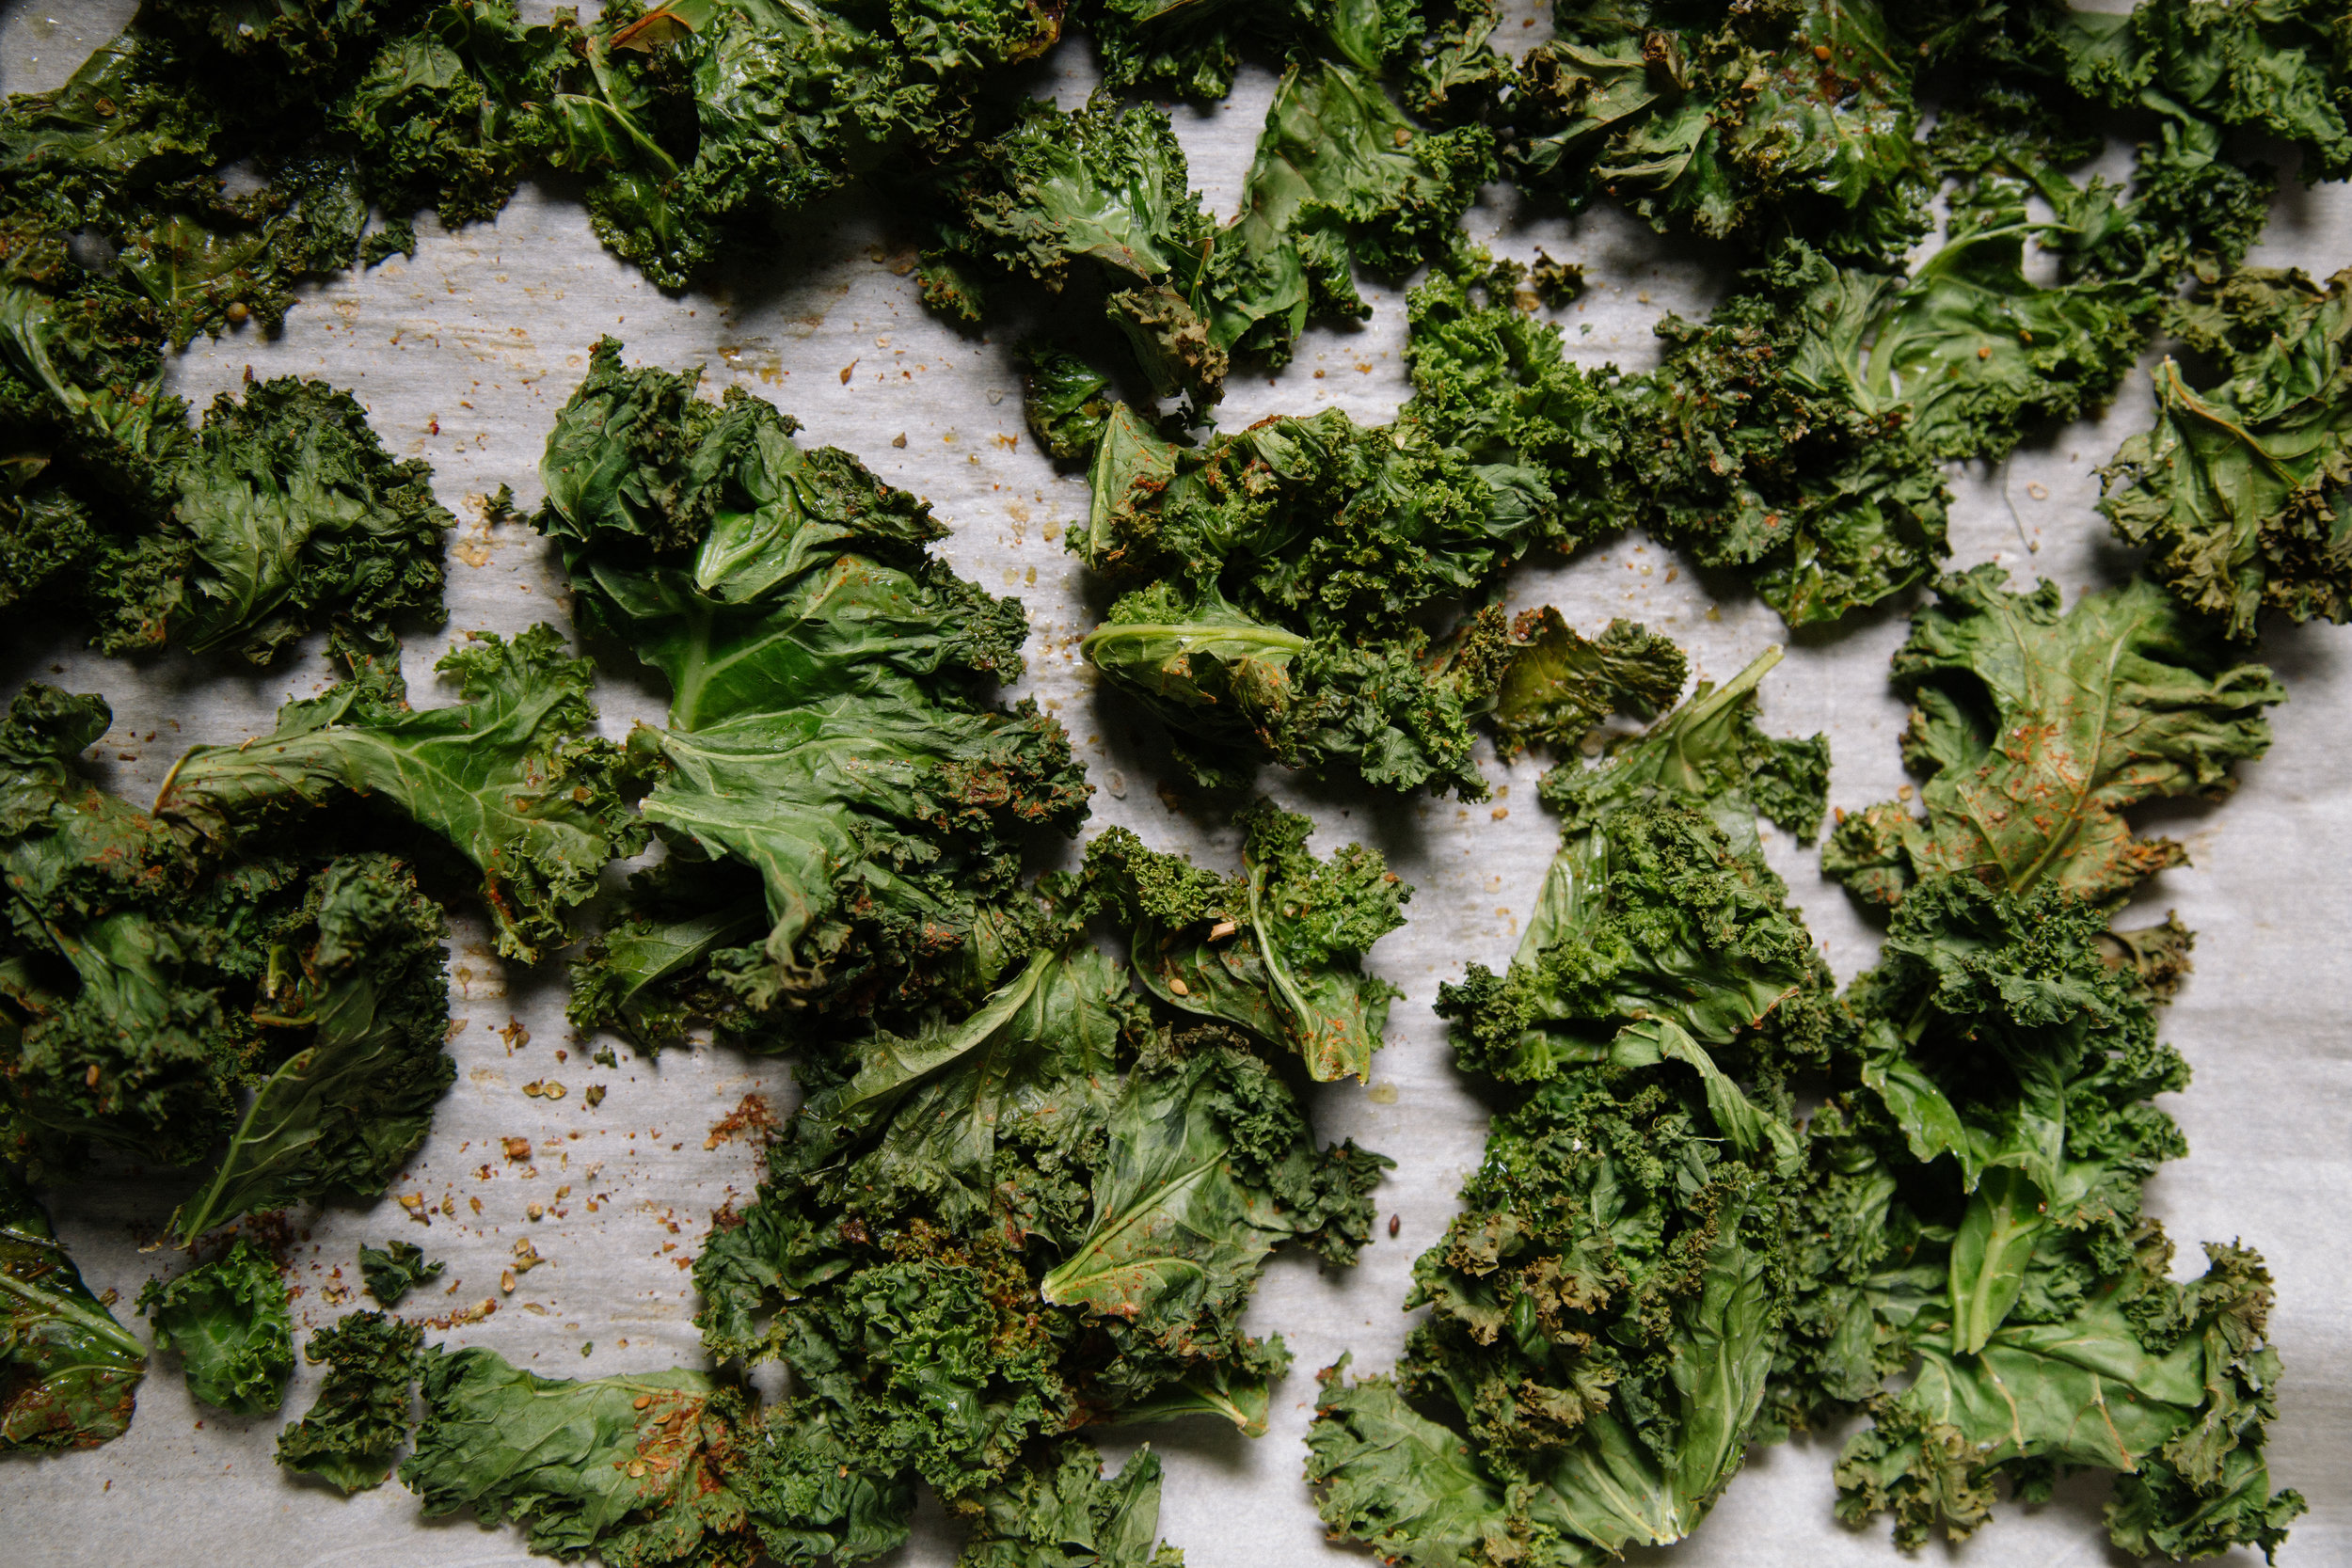 Cannabis is the new kale anyway, right?